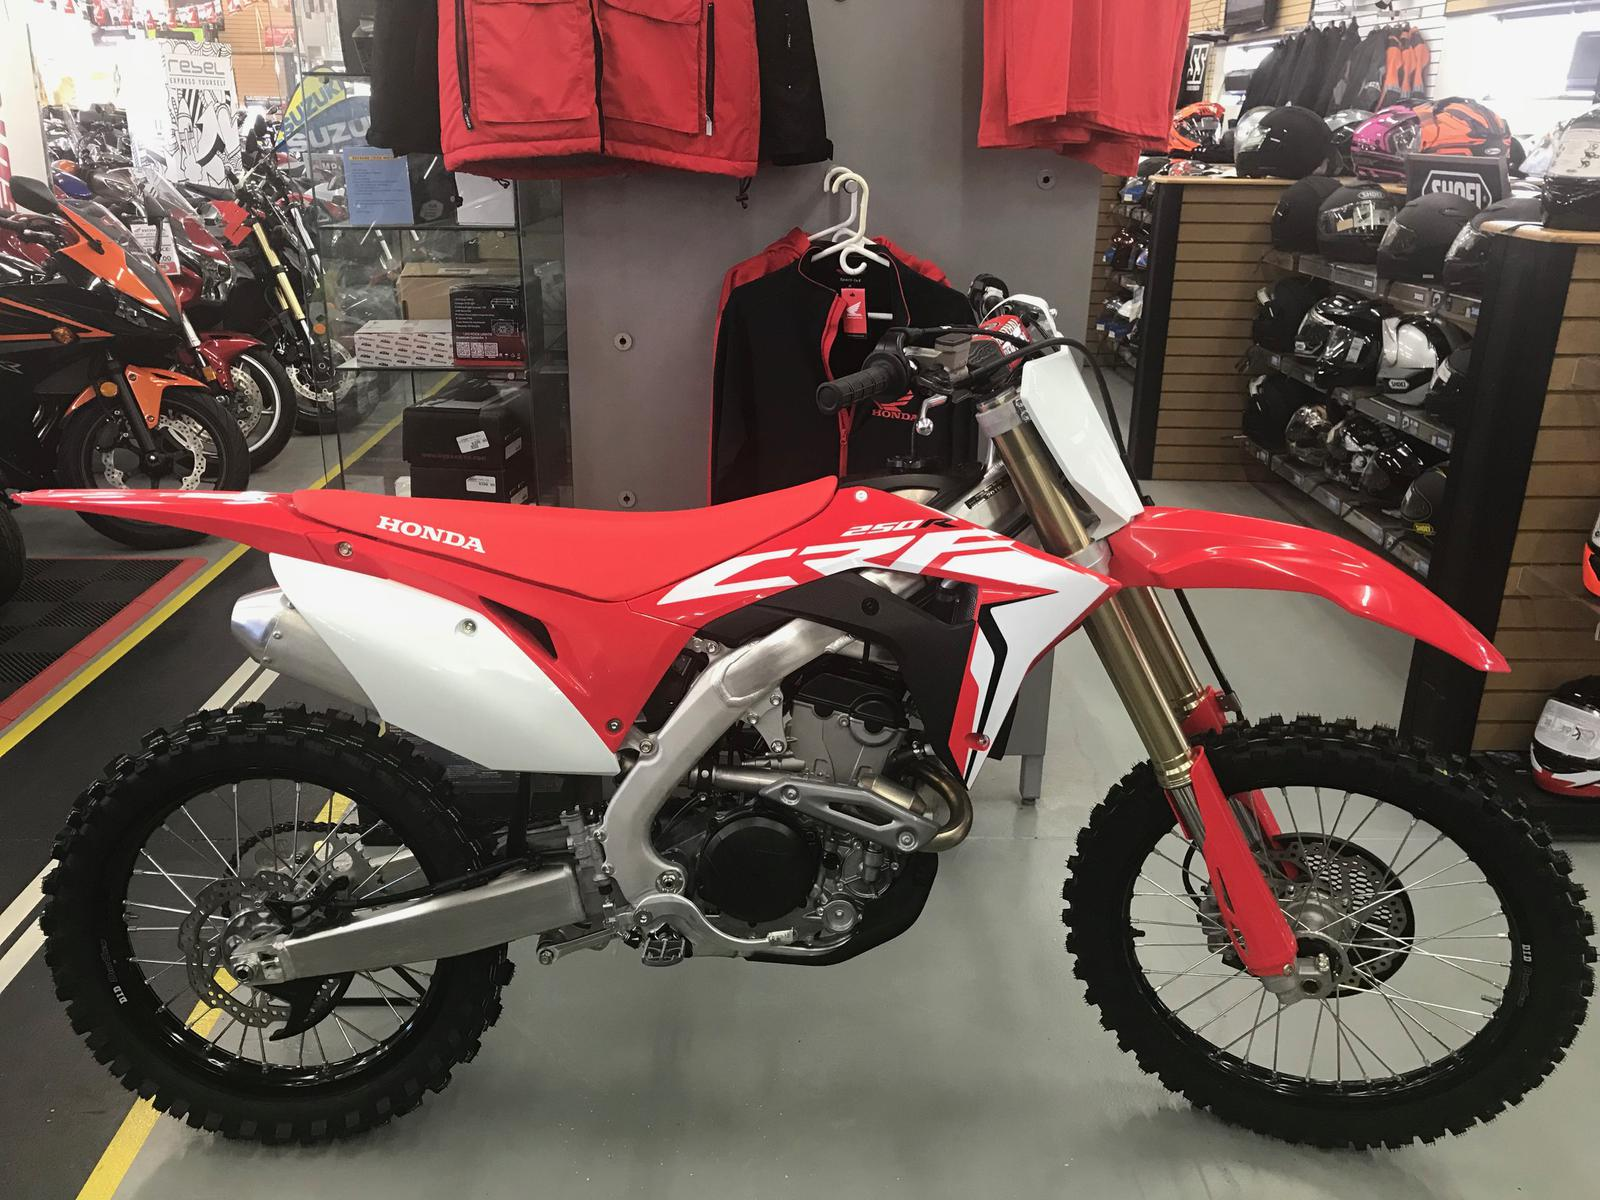 2019 Honda Crf250r For Sale In Cambridge Mn Larsons Cycle Inc